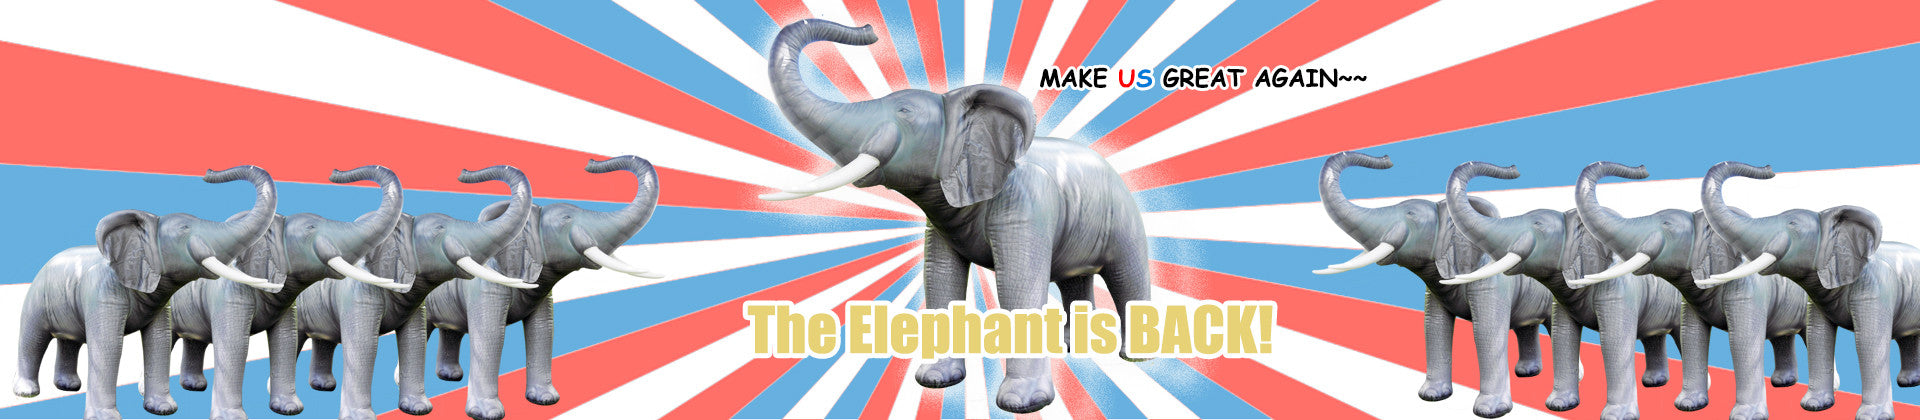 The famous Jet Creations LIFELIKE Elephant is back NOW!